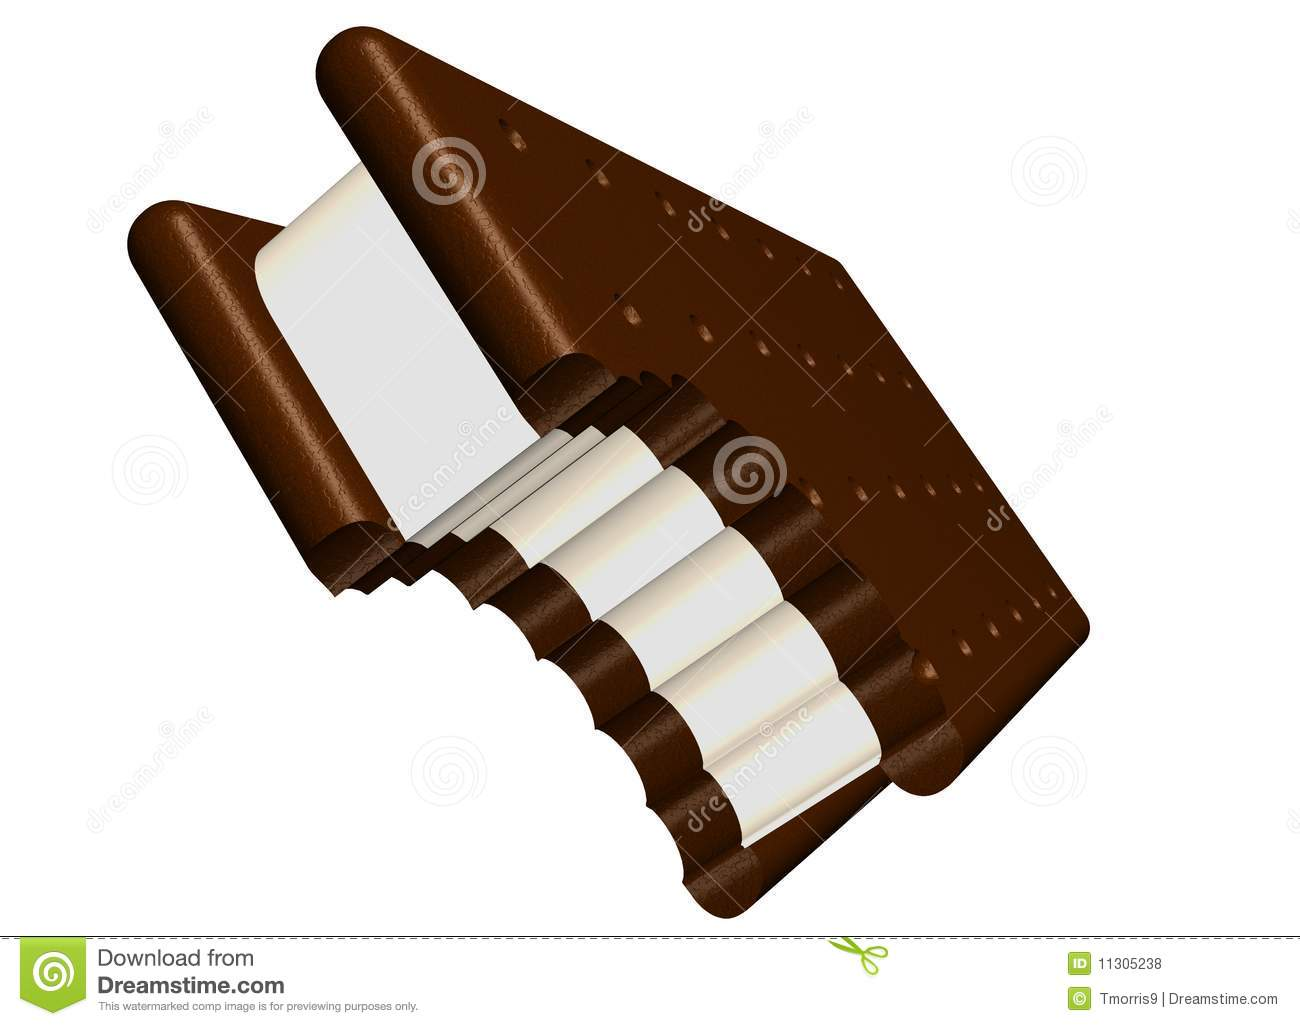 Yummy Ice Cream Sandwich Royalty Free Stock Photos   Image  11305238